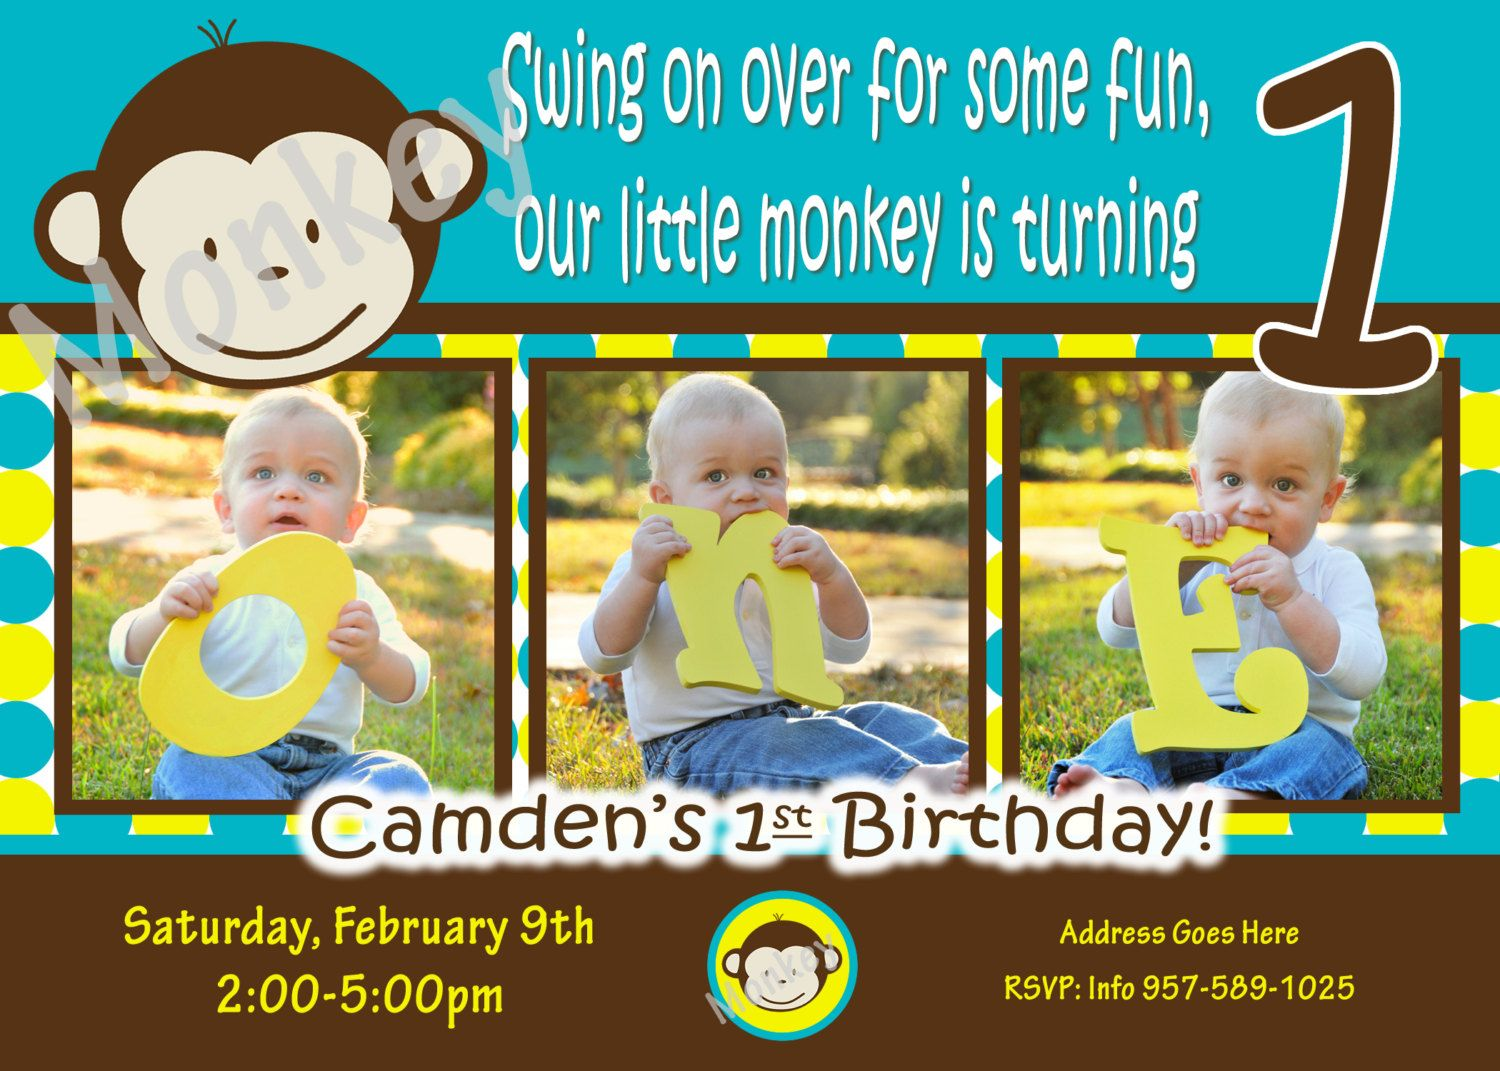 Mod Monkey Invitation Mod Monkey invite Photo - 1st Birthday Party ...